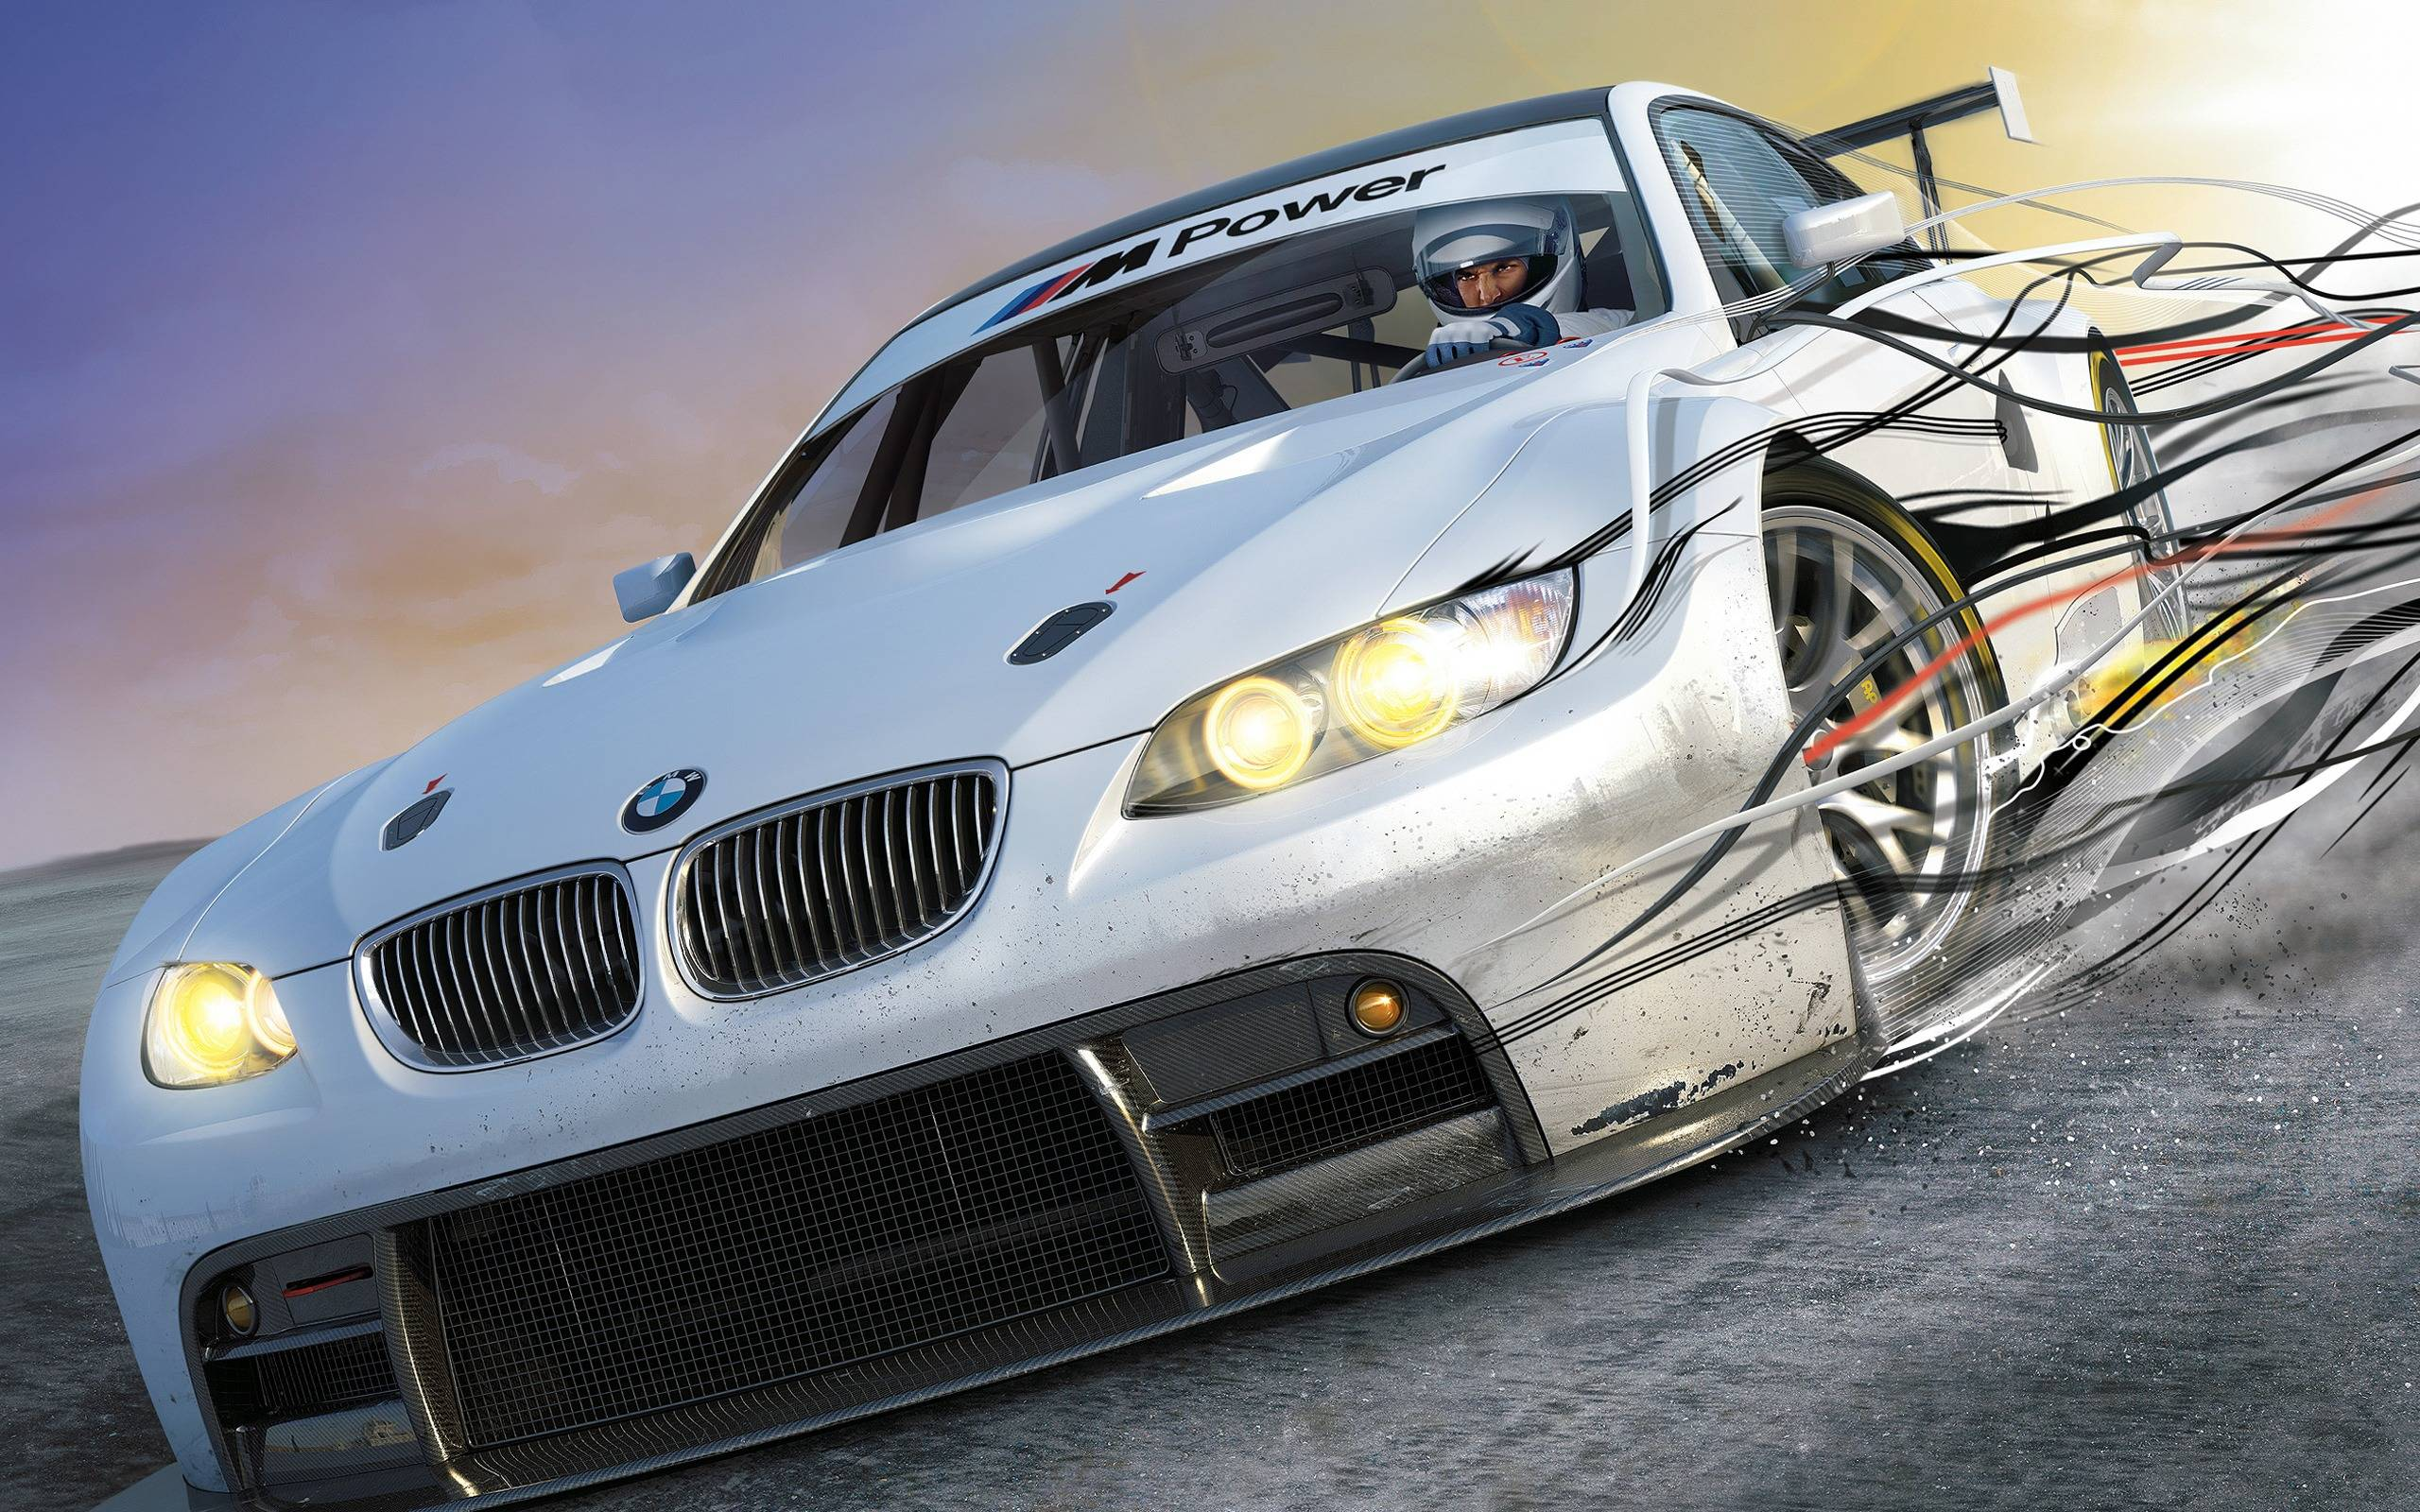 Stylish wallpapers of Need for Speed Game download | fix tv forum